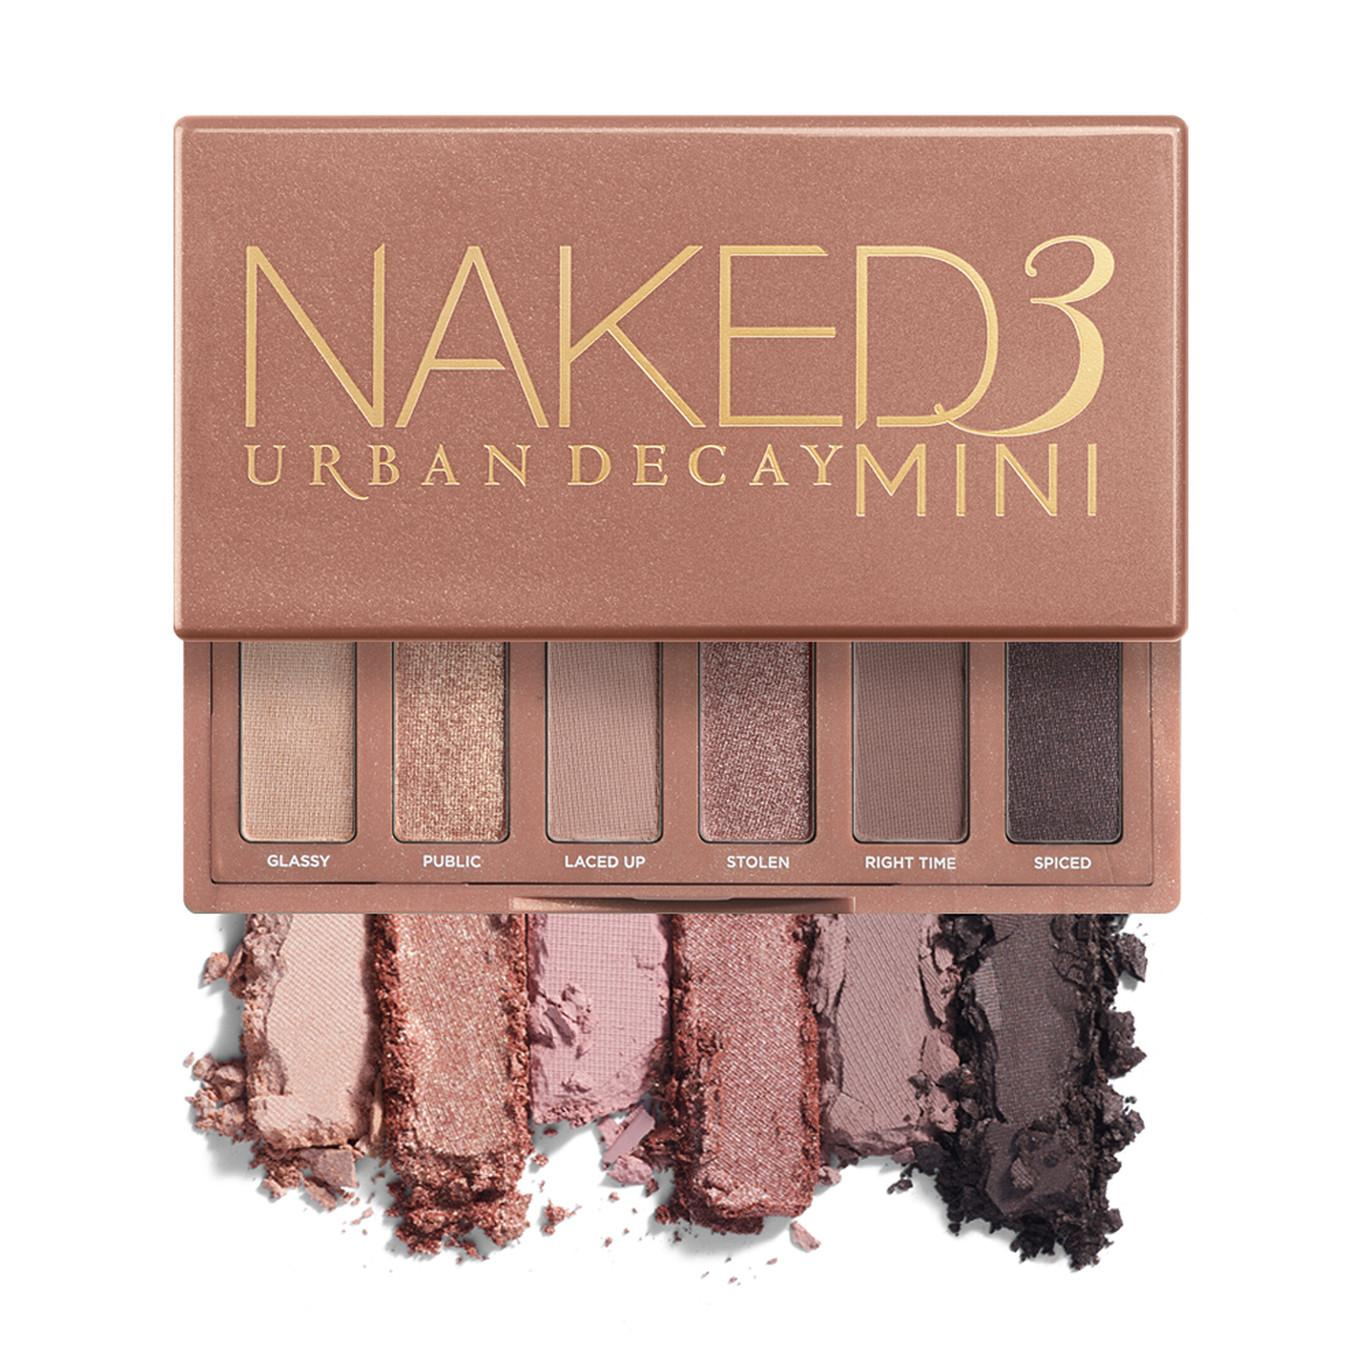 Urban Decay Naked3 Mini Eyeshadow Palette Open With Crash Swatches